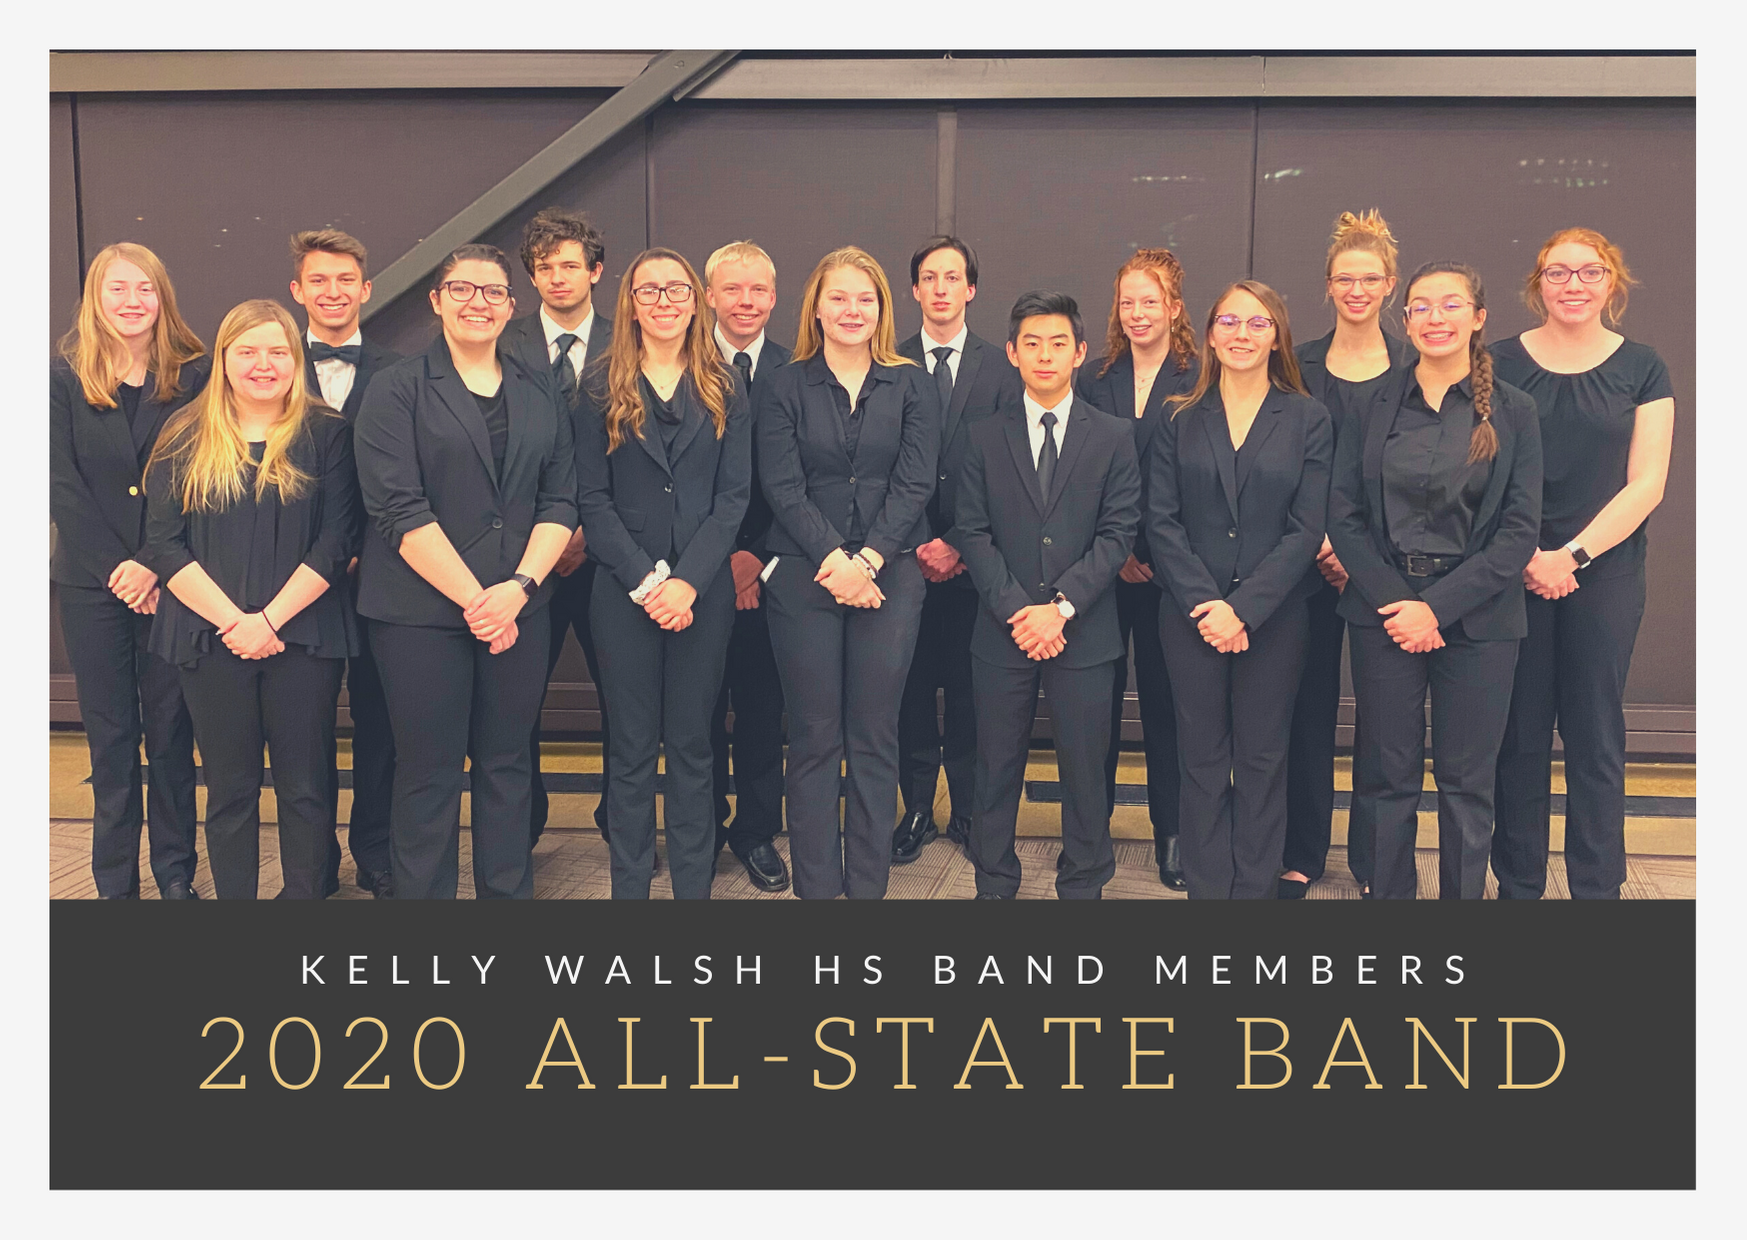 2020 All-state band